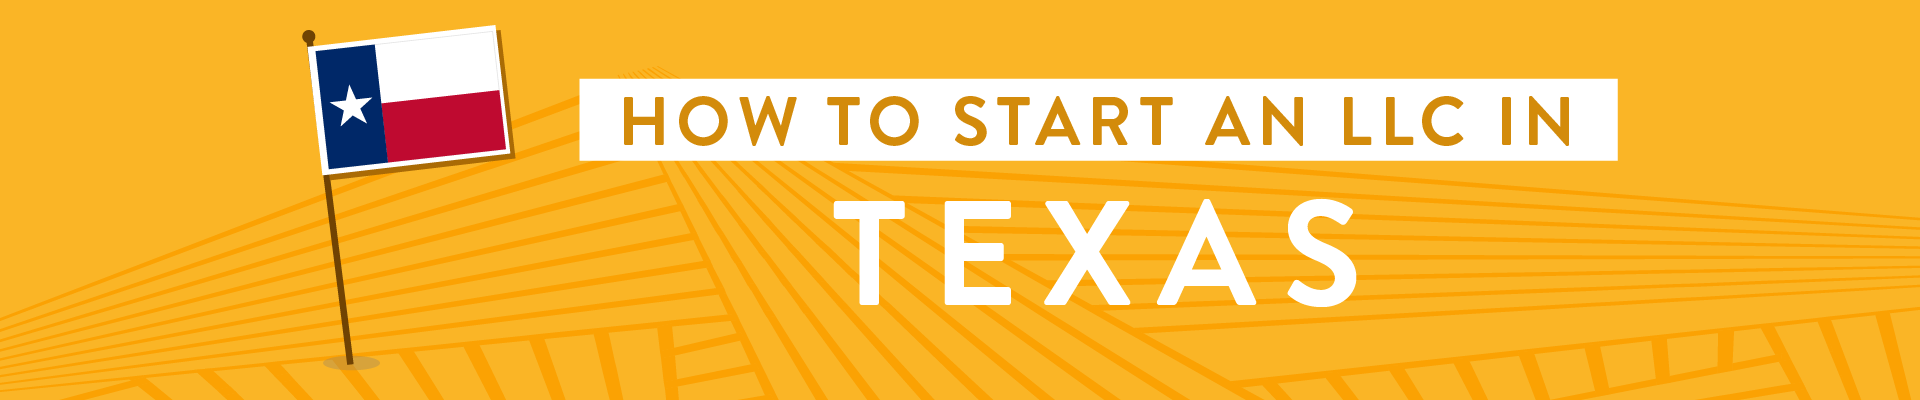 Form Texas Llc How To Start A Tx Business How To Start An Llc Org